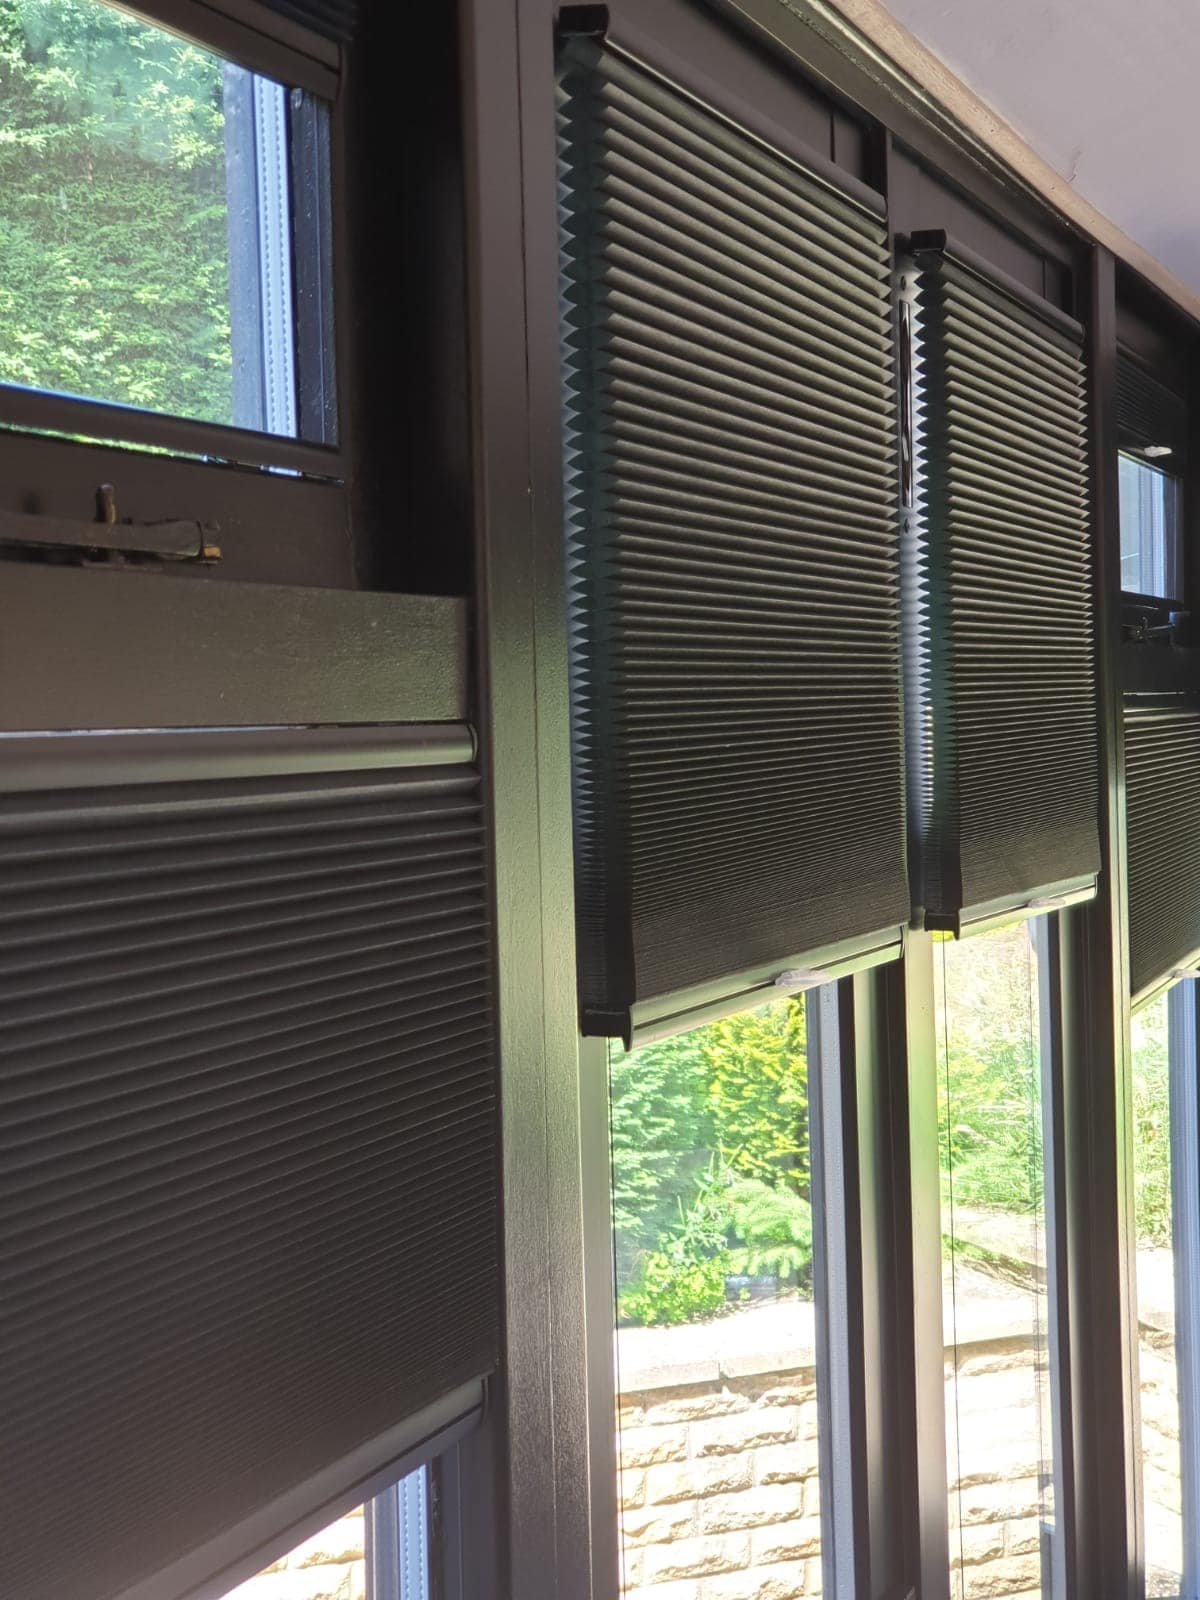 Duette Blinds Honeycomb Blinds Leicester Coventry Northampton Fraser James Blinds